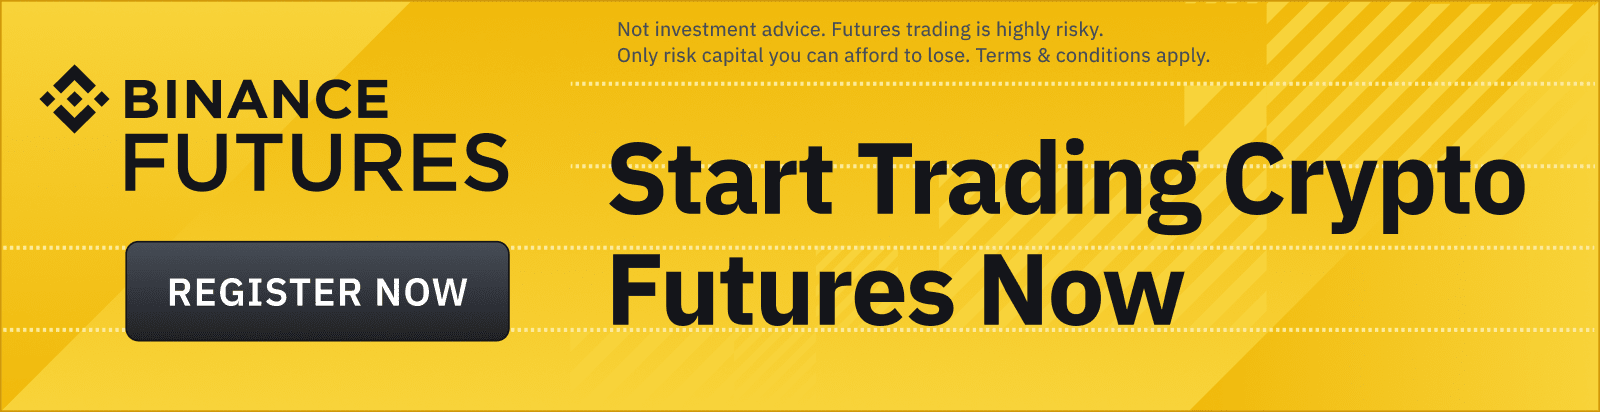 3 Reasons Why You Should Trade BUSD-margined Futures ContractsCryptocurrency Trading Signals, Strategies & Templates | DexStrats